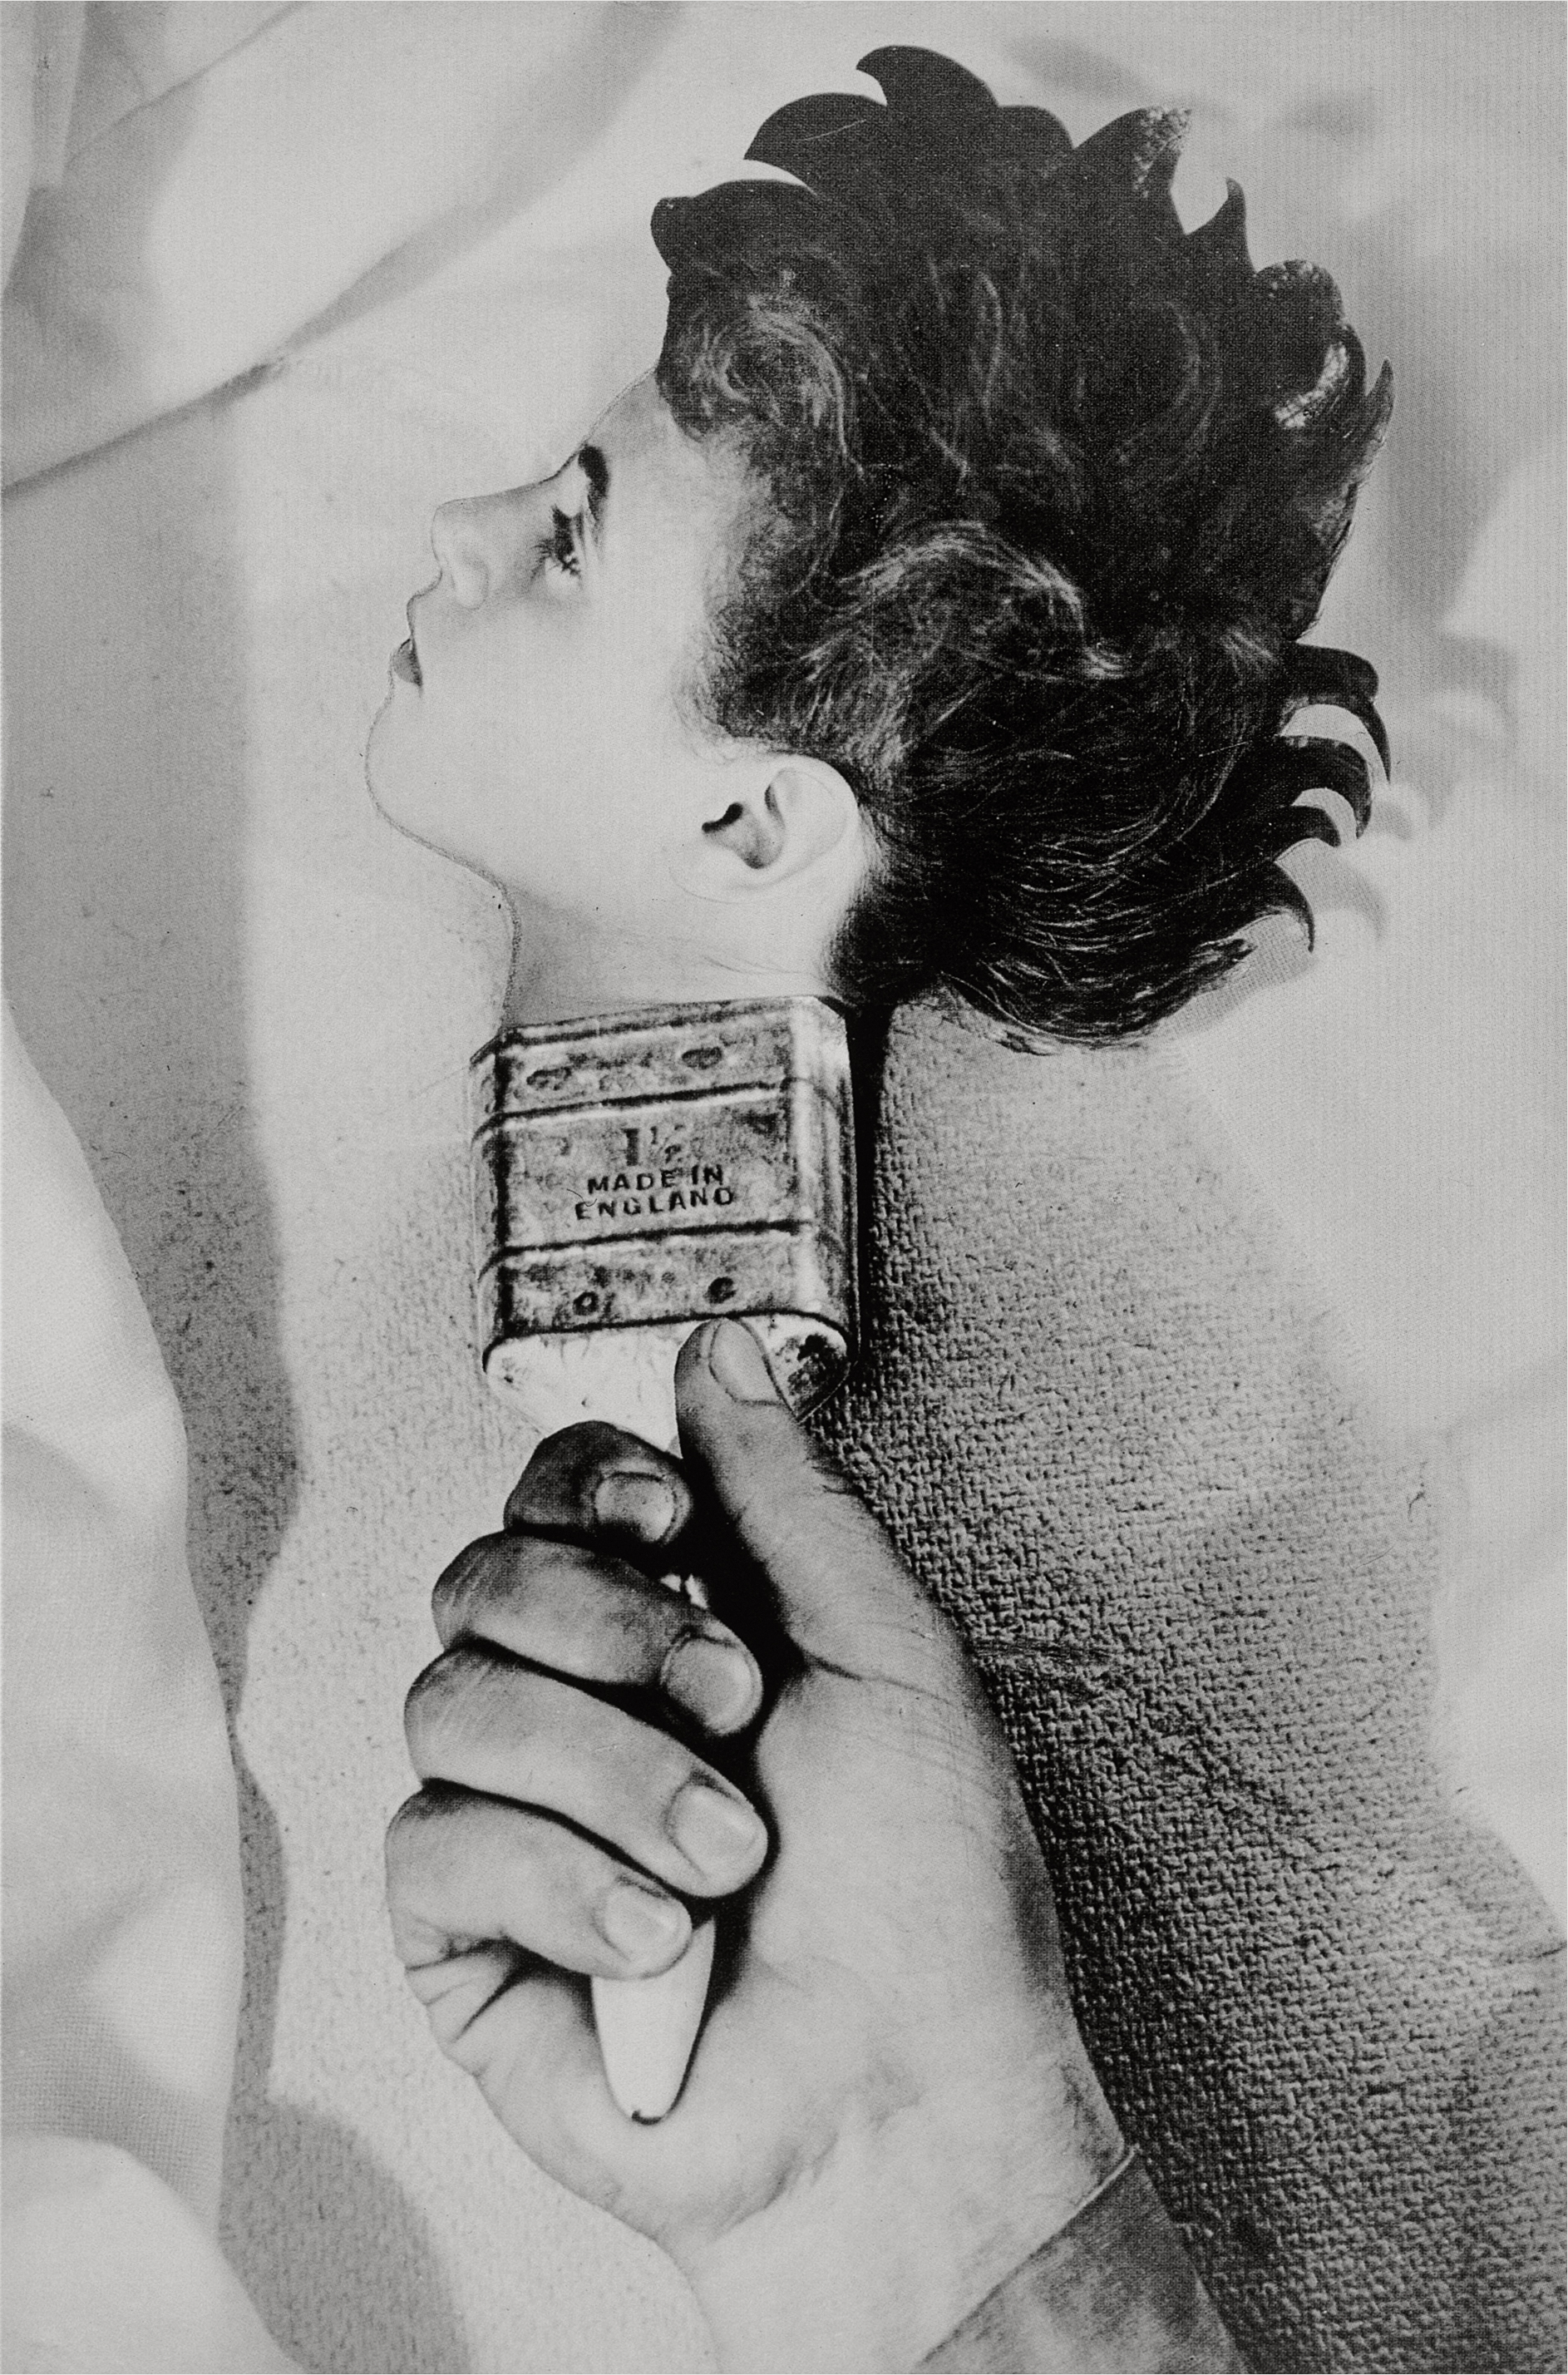 Grete Stern. Sueño No. 31: Made in England (Dream No. 31: Made in England) 1950